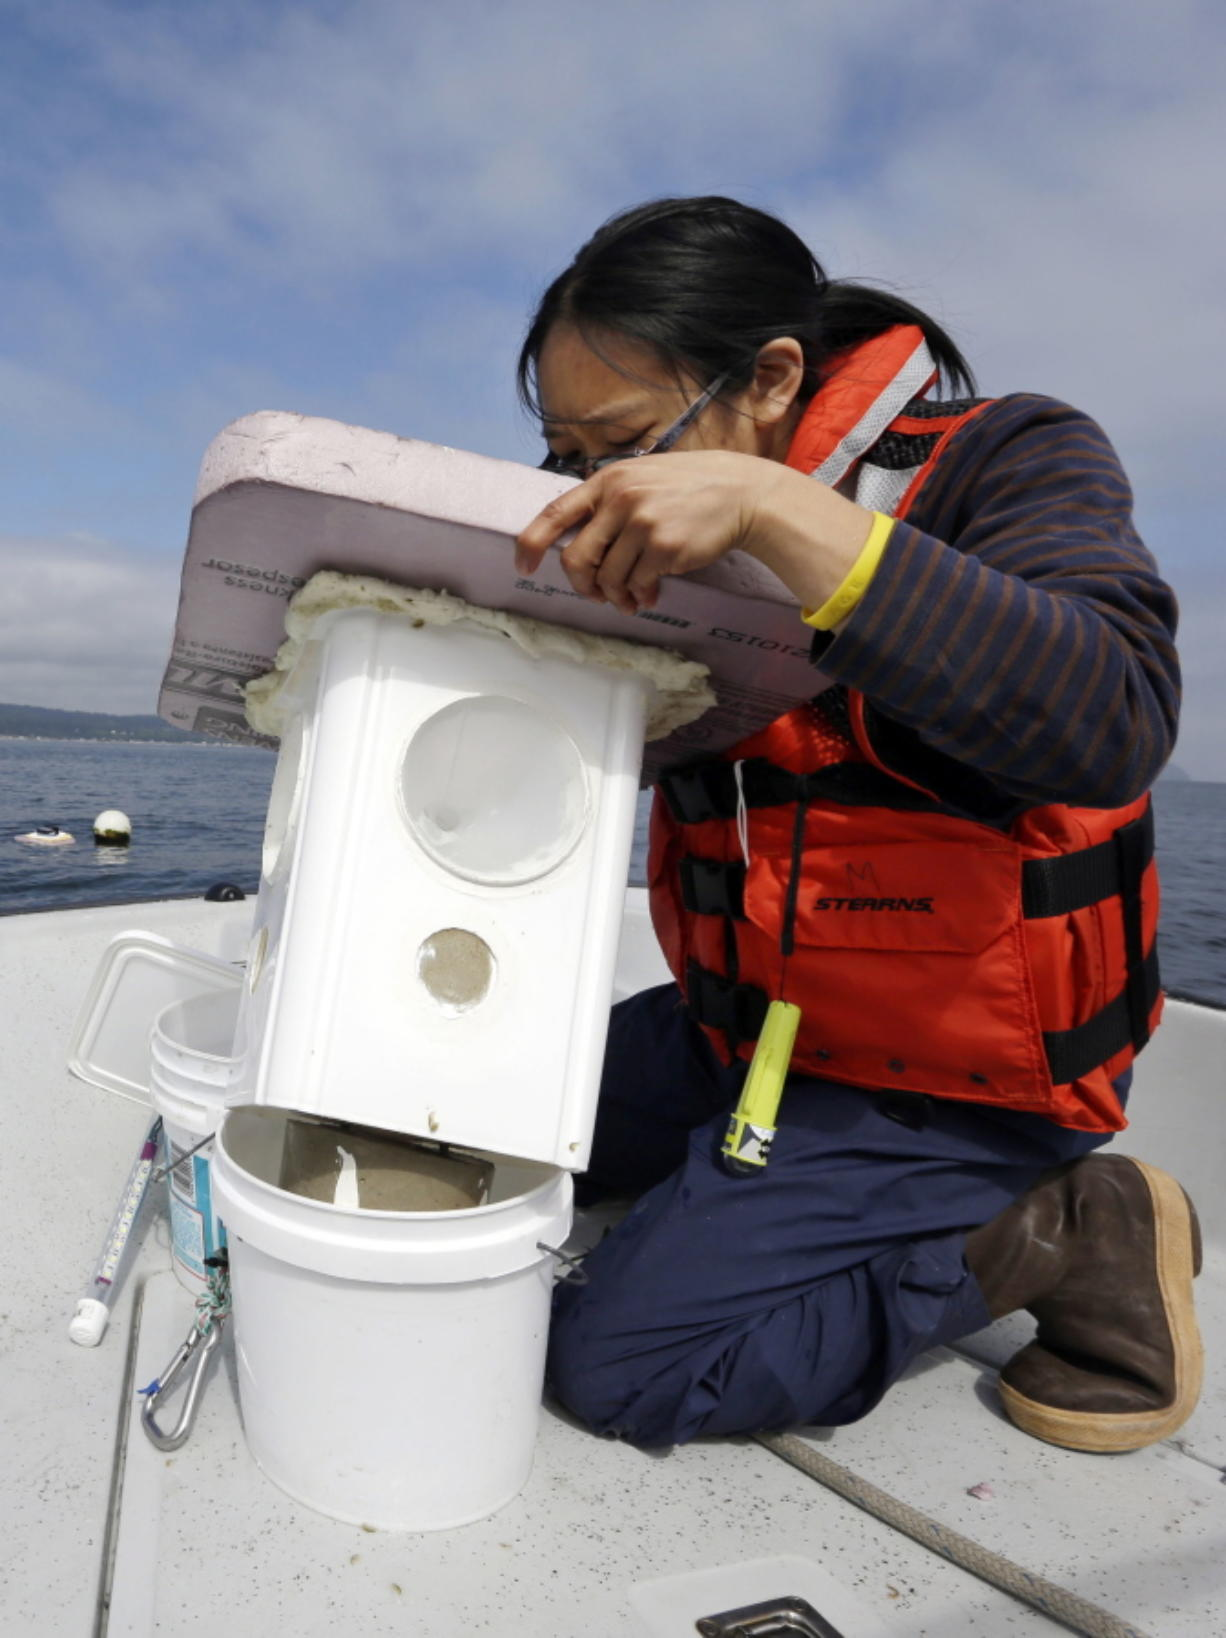 Audrey Djunaedi, a lab technician with NOAA's Northwest Fisheries Science Center, looks into a light-catching trap set out the day before to collect Dungeness crab larvae in the marine waters outside of the center's station in Mukilteo, Wash., on July 26, 2016. As marine waters continue to absorb more atmospheric carbon dioxide, federal scientists are worried that the changing ocean chemistry may put Northwest Dungeness crabs at risk.